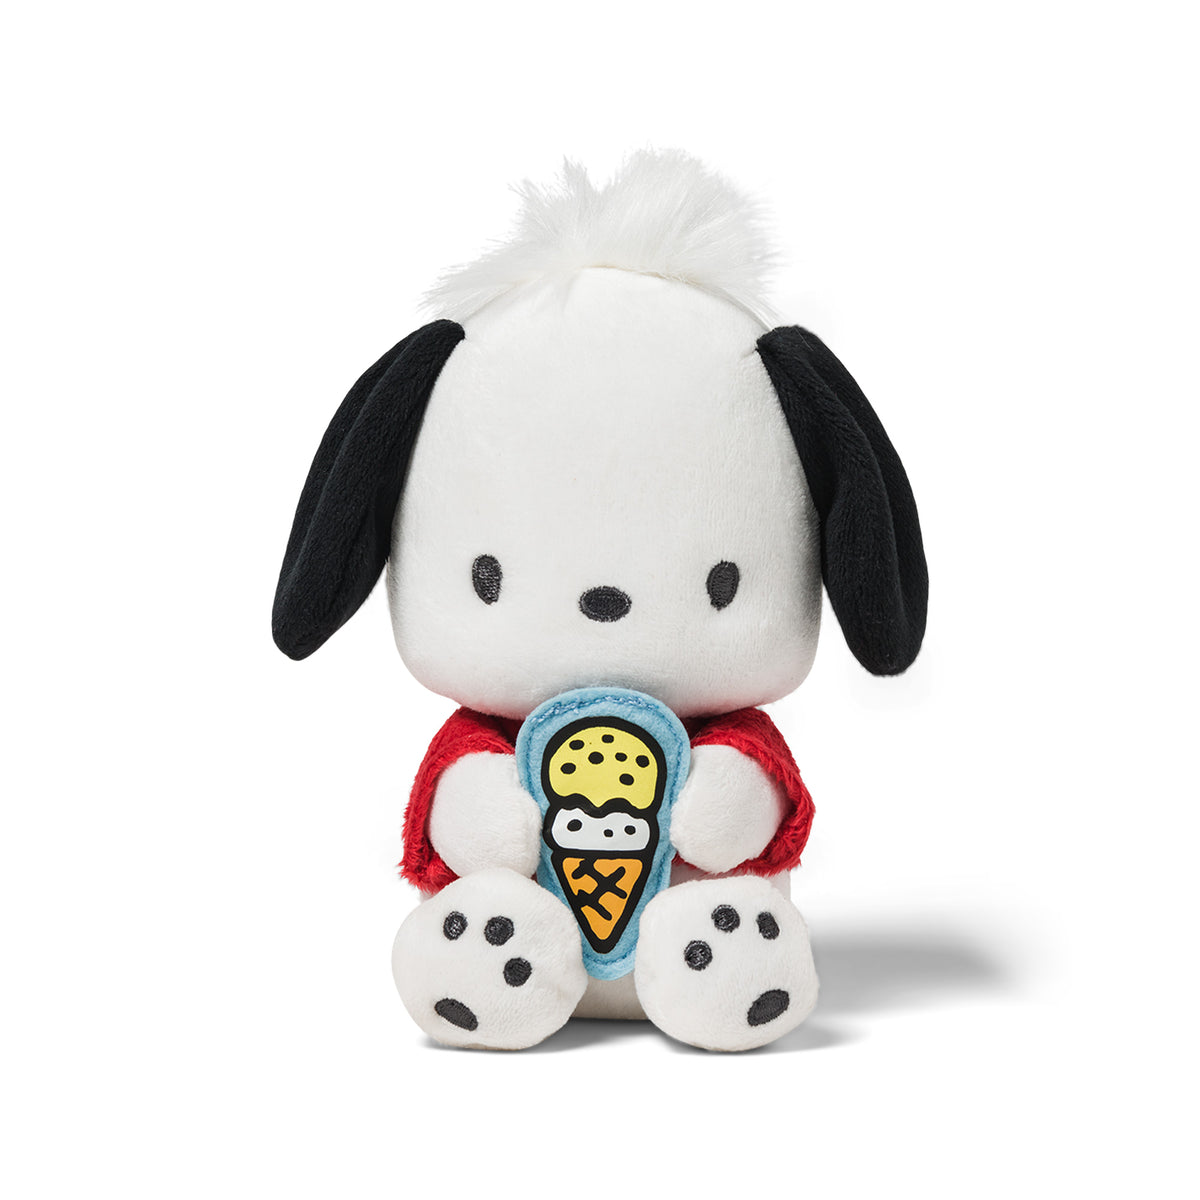 "Pochacco Tasty Treats 6"" Plush"